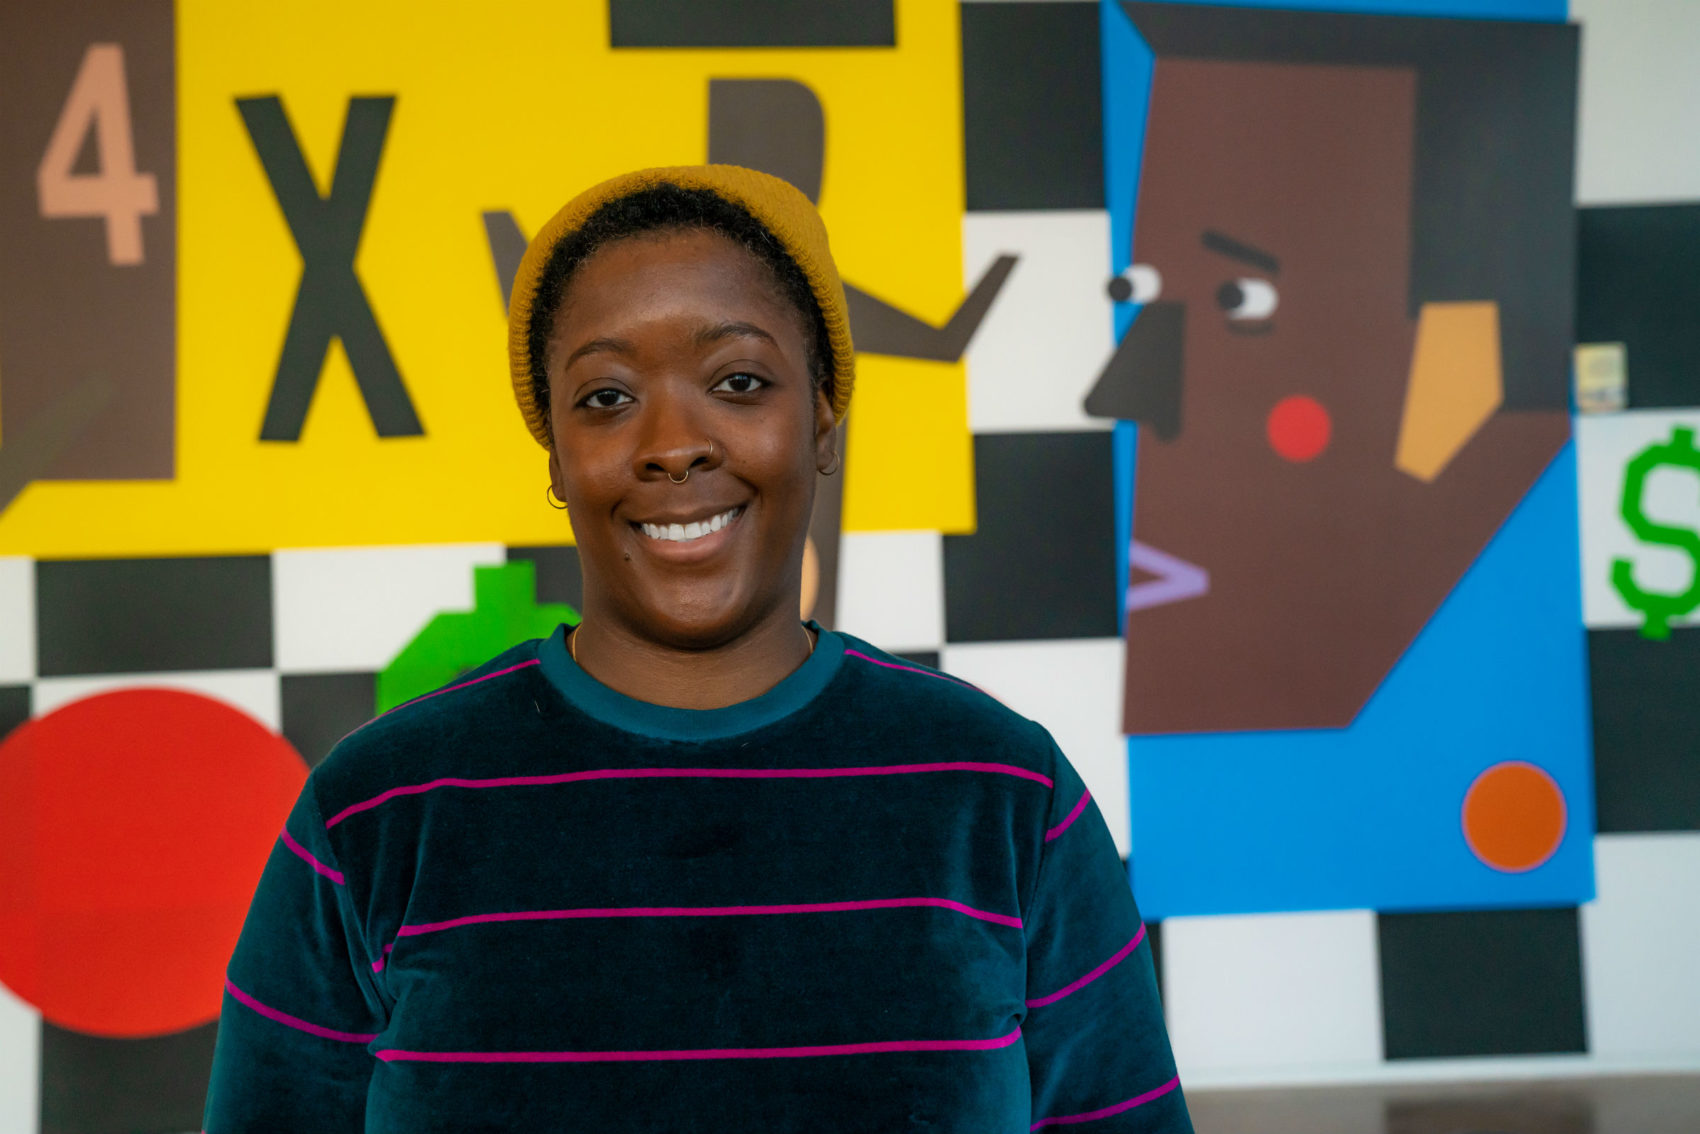 Using The Language Of Symbols, Nina Chanel Abney's New Mural At ...